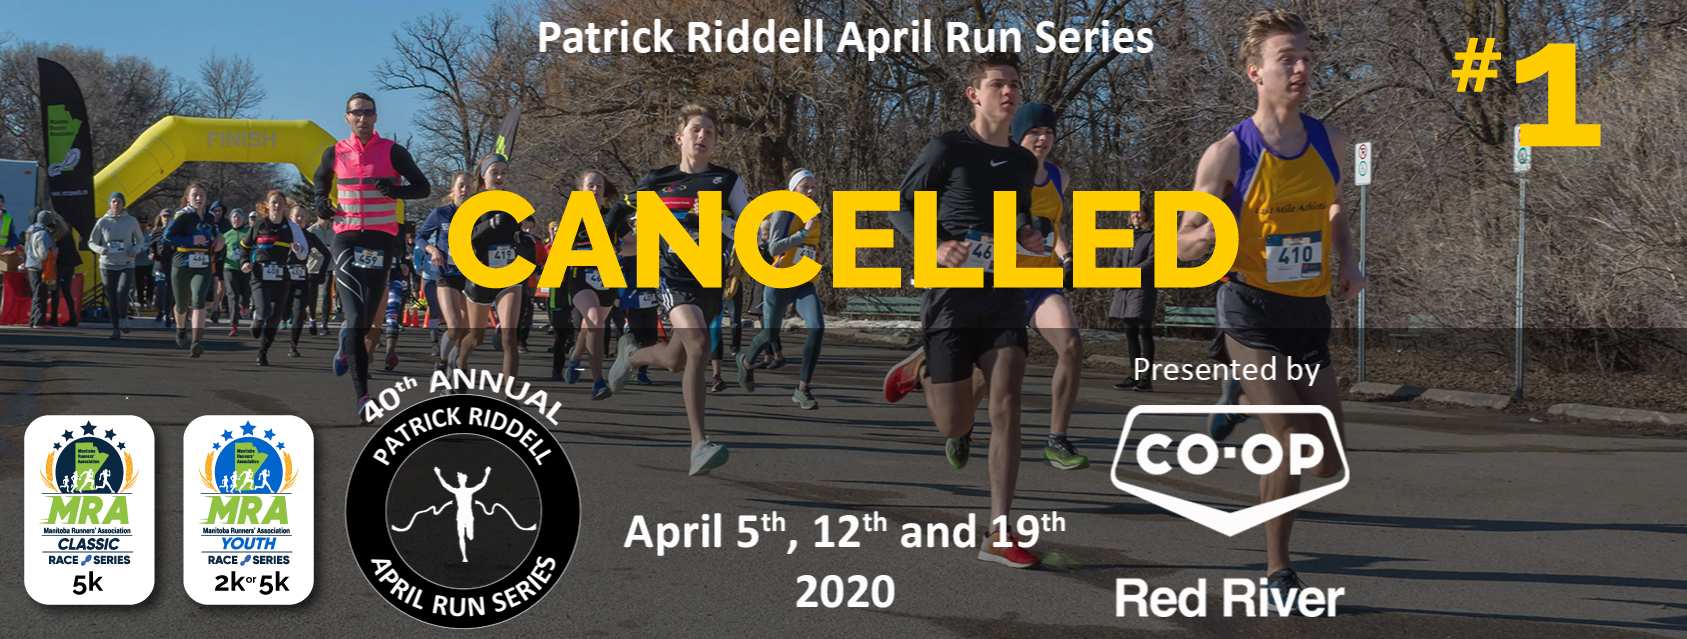 Patrick Riddell April Run Series #1- Presented by Red River Co-op  **CANCELLED**